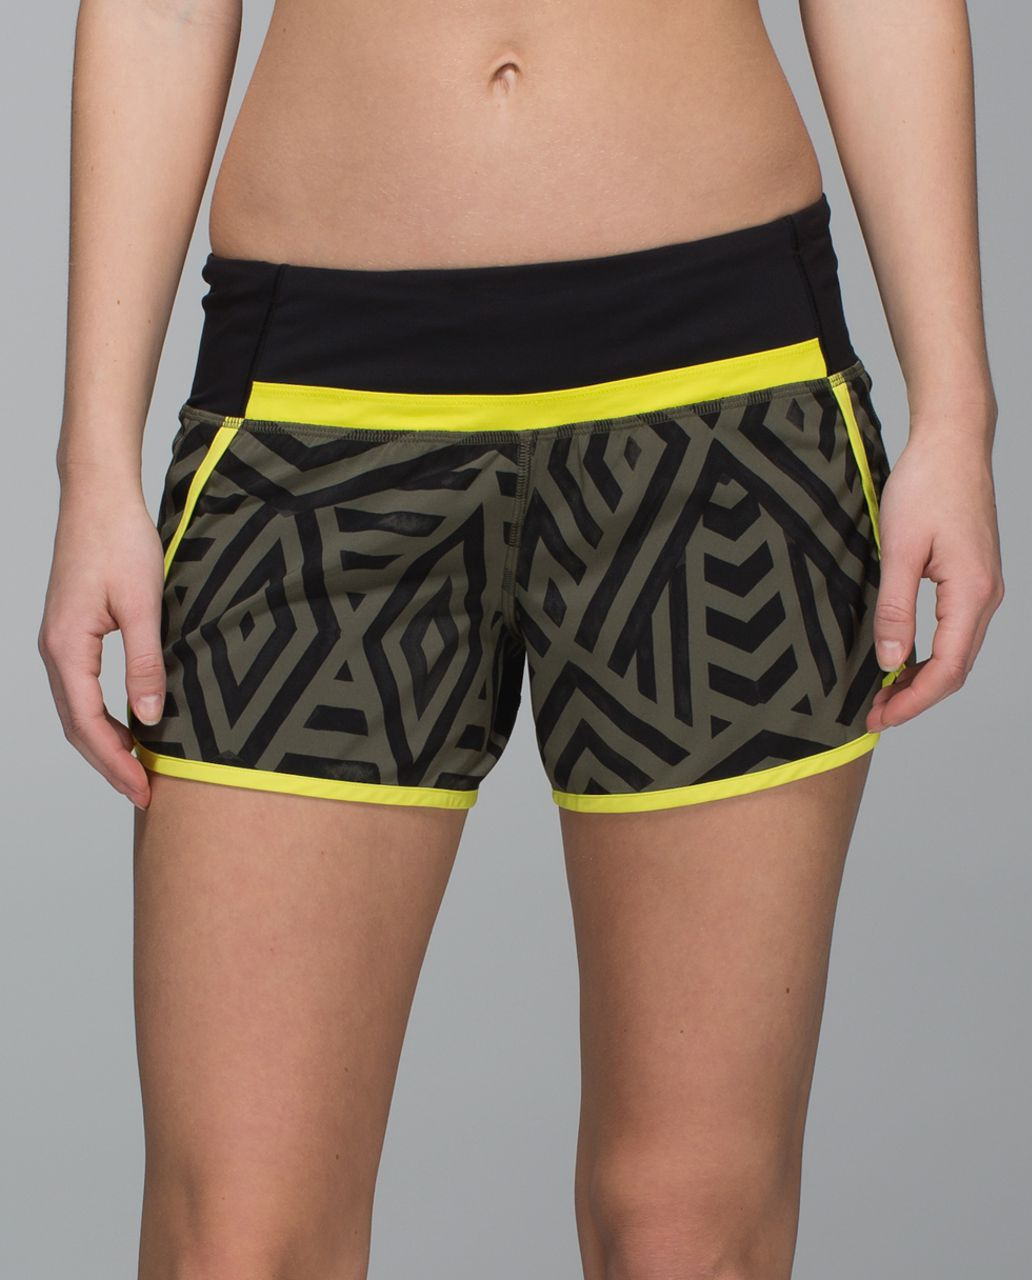 Lululemon Run Times Short *4-way Stretch - Chevron Shuffle Fatigue Green Black / Split Pea / Black